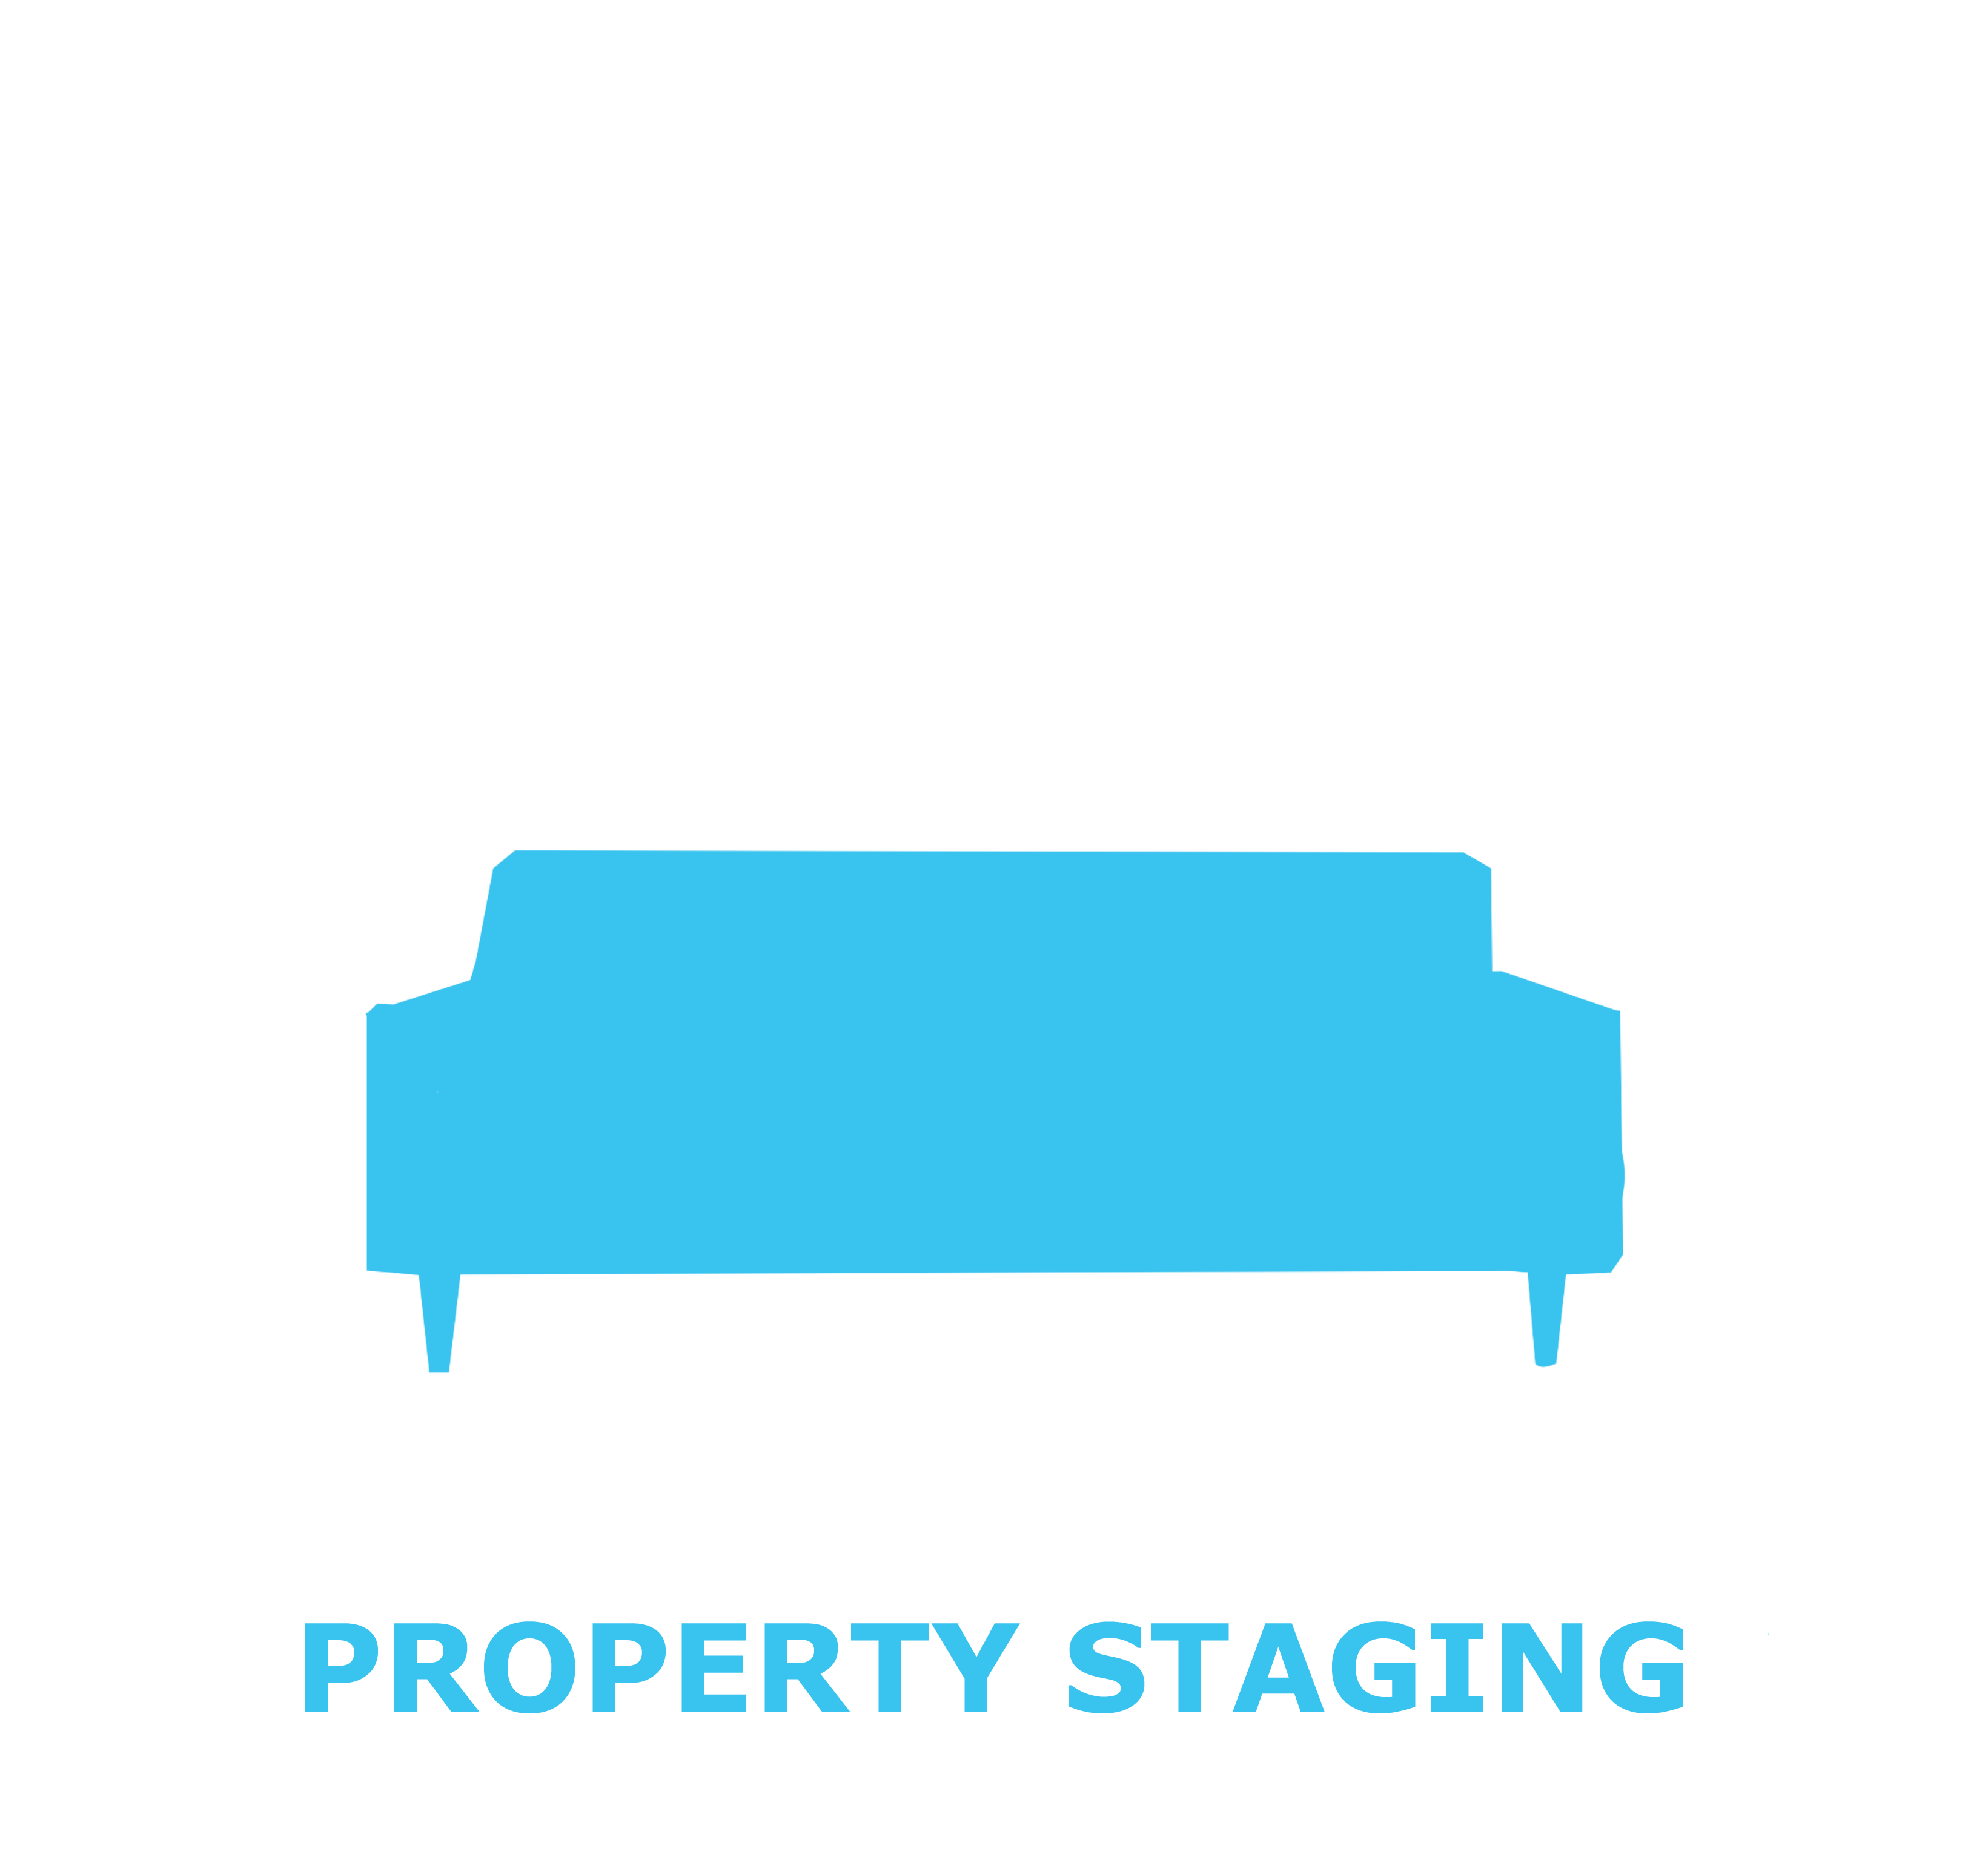 Home Sale Stagers